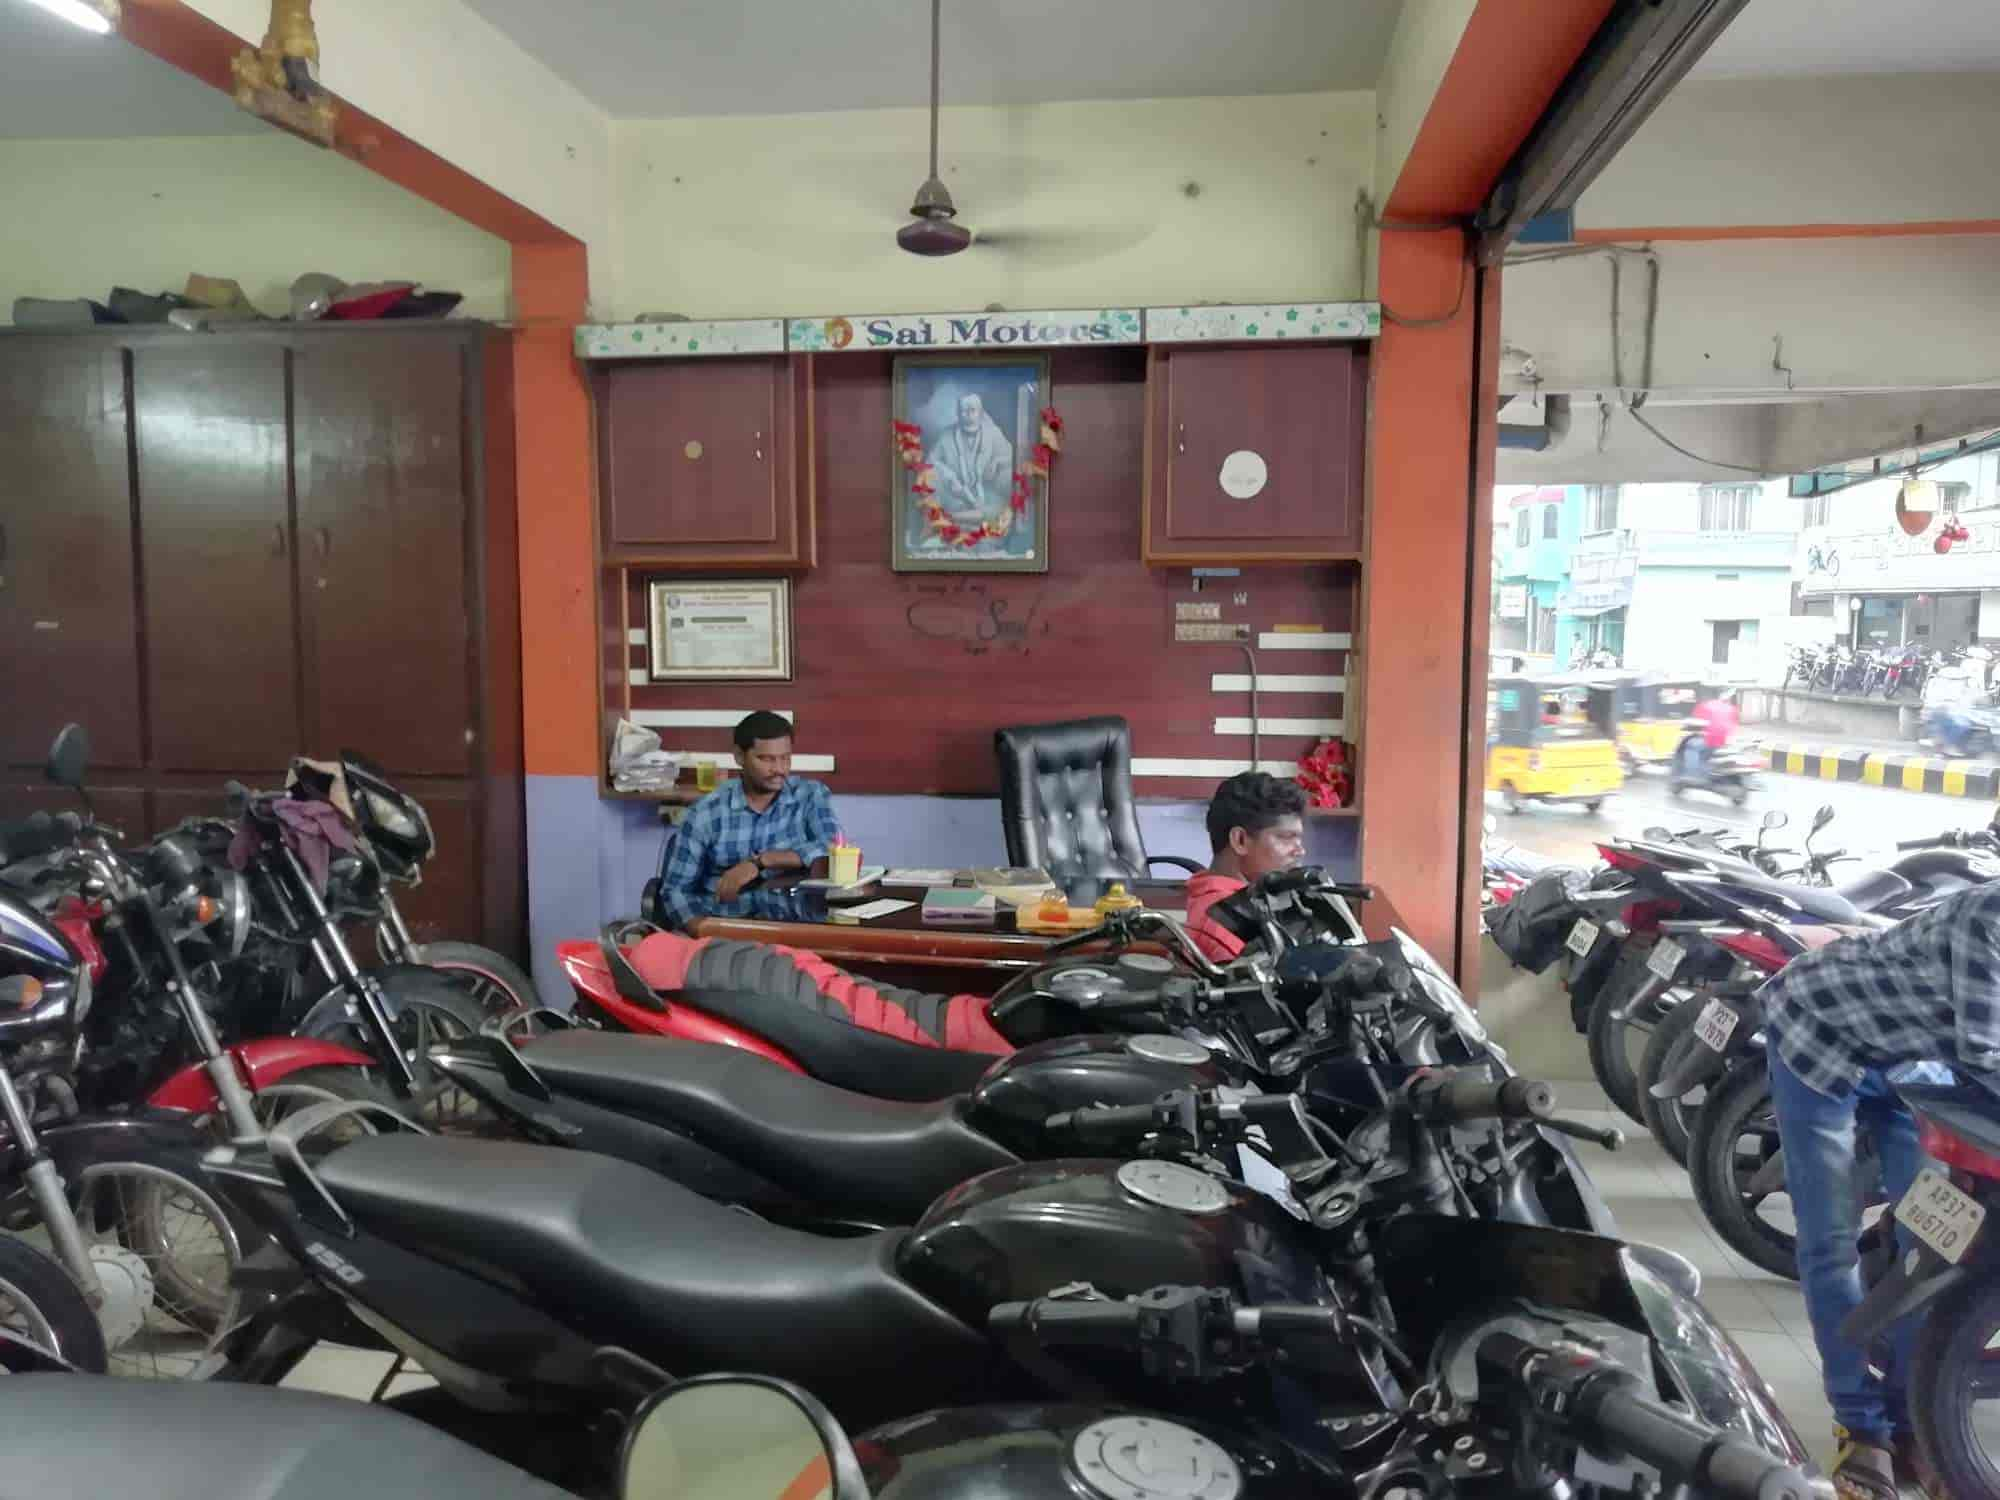 New Sai Motors Rtc Complex Road Second Hand Motorcycle Dealers